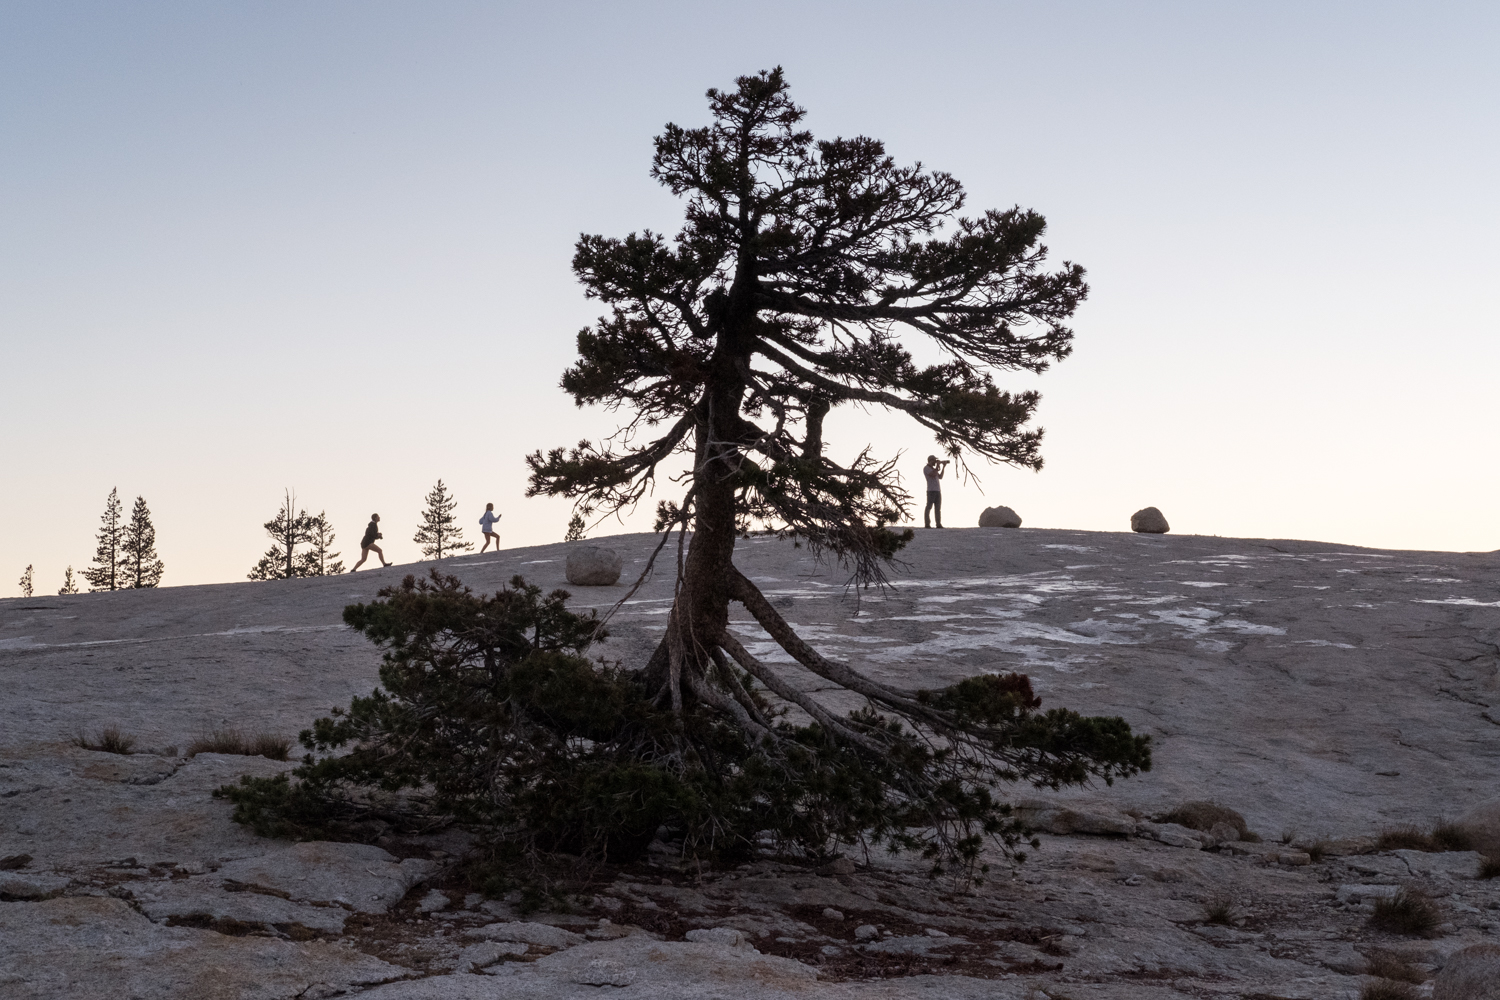 Photographers climb Pothole Dome, located on the west side of Tuolumne Meadows in Yosemite National Park.